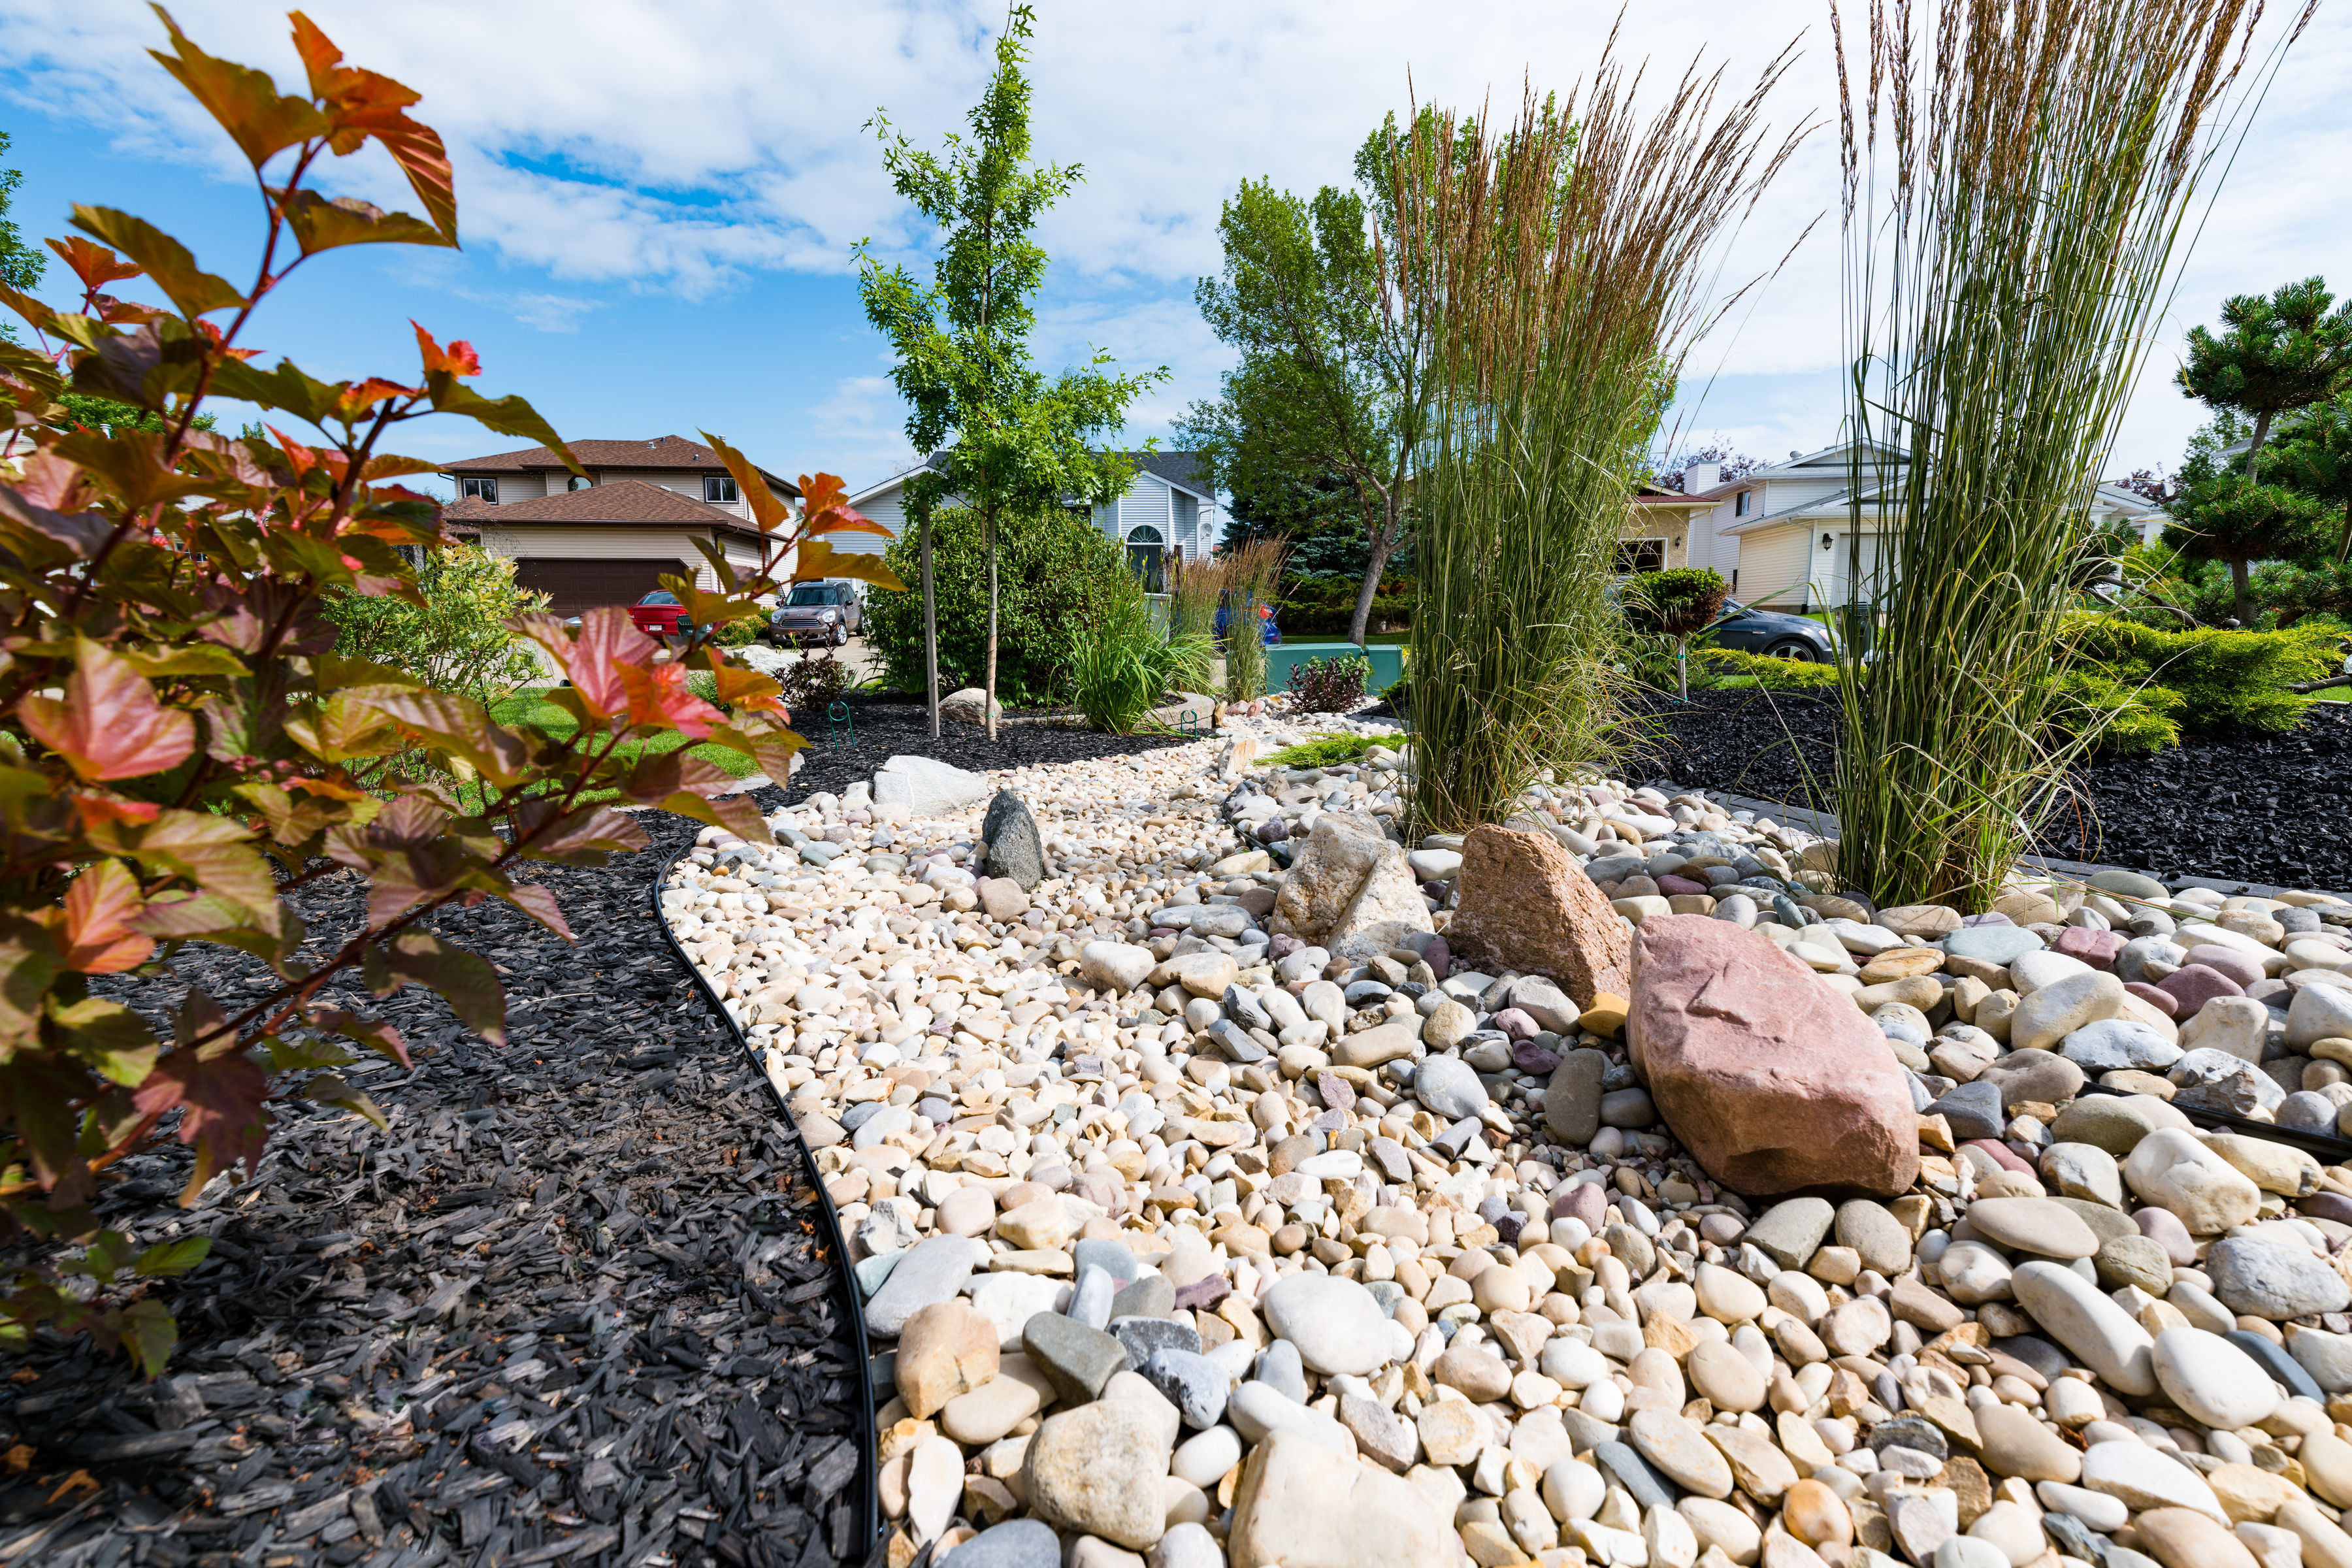 Landscape Trends Forecast for Spring 2020